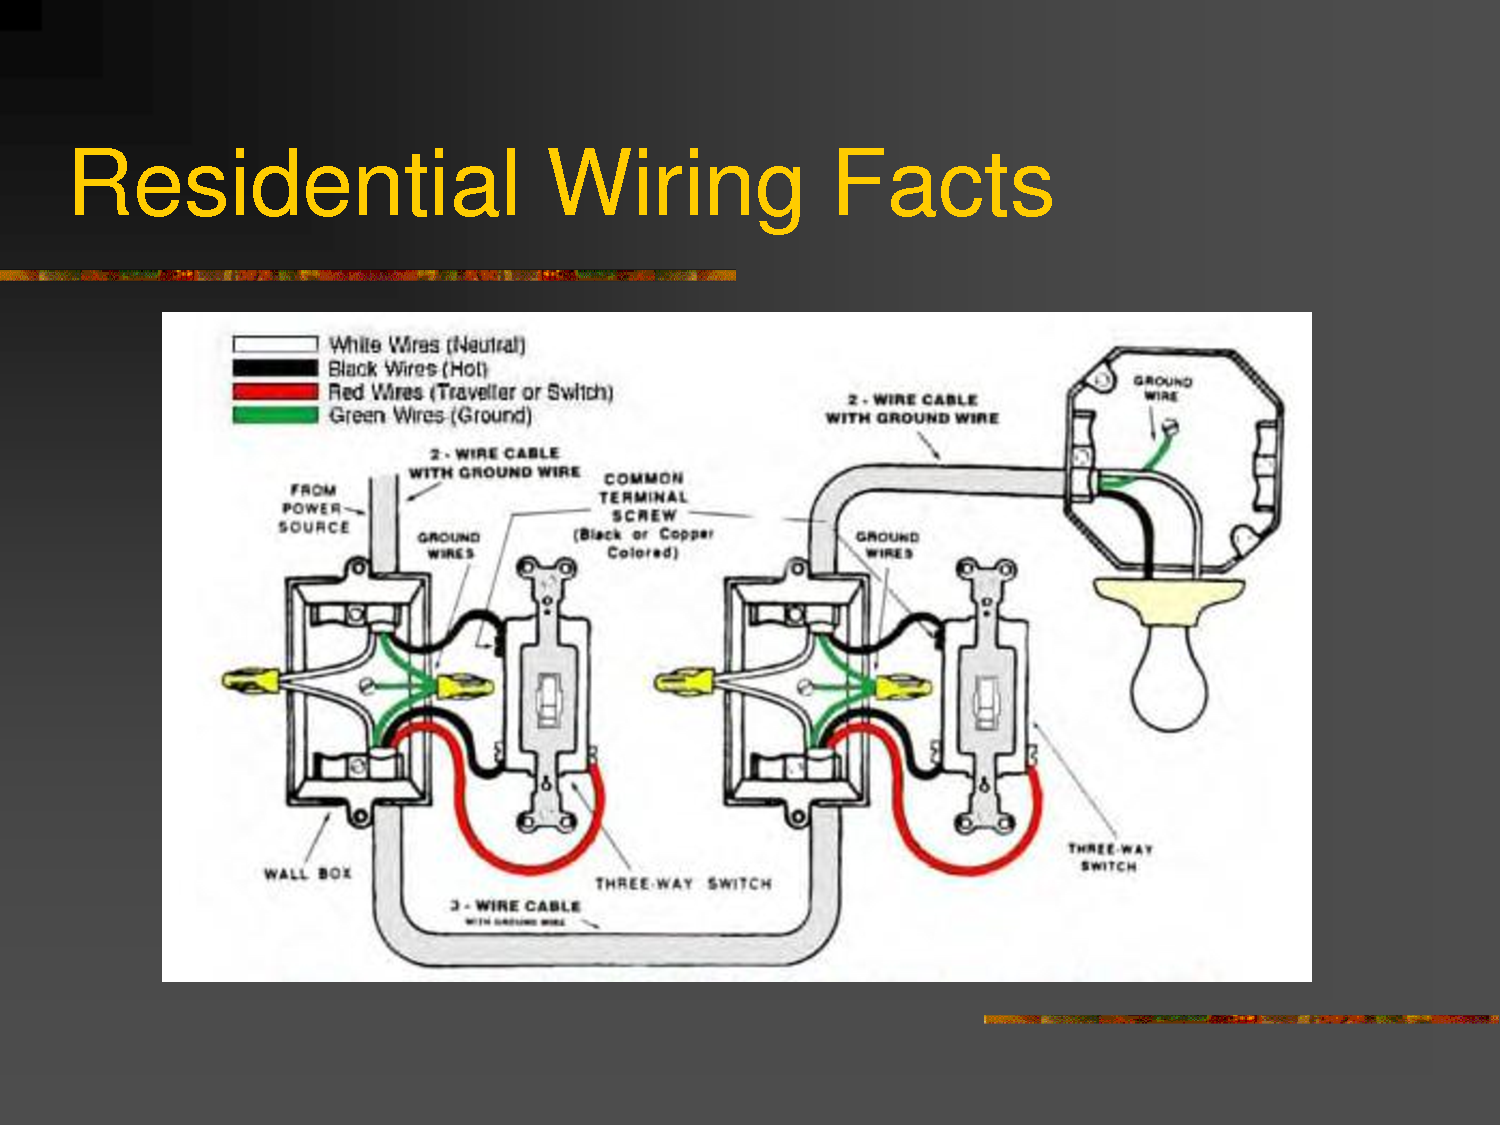 4 best images of residential wiring diagrams house electrical rh pinterest com residential electrical wiring supplies residential electrical wiring panels